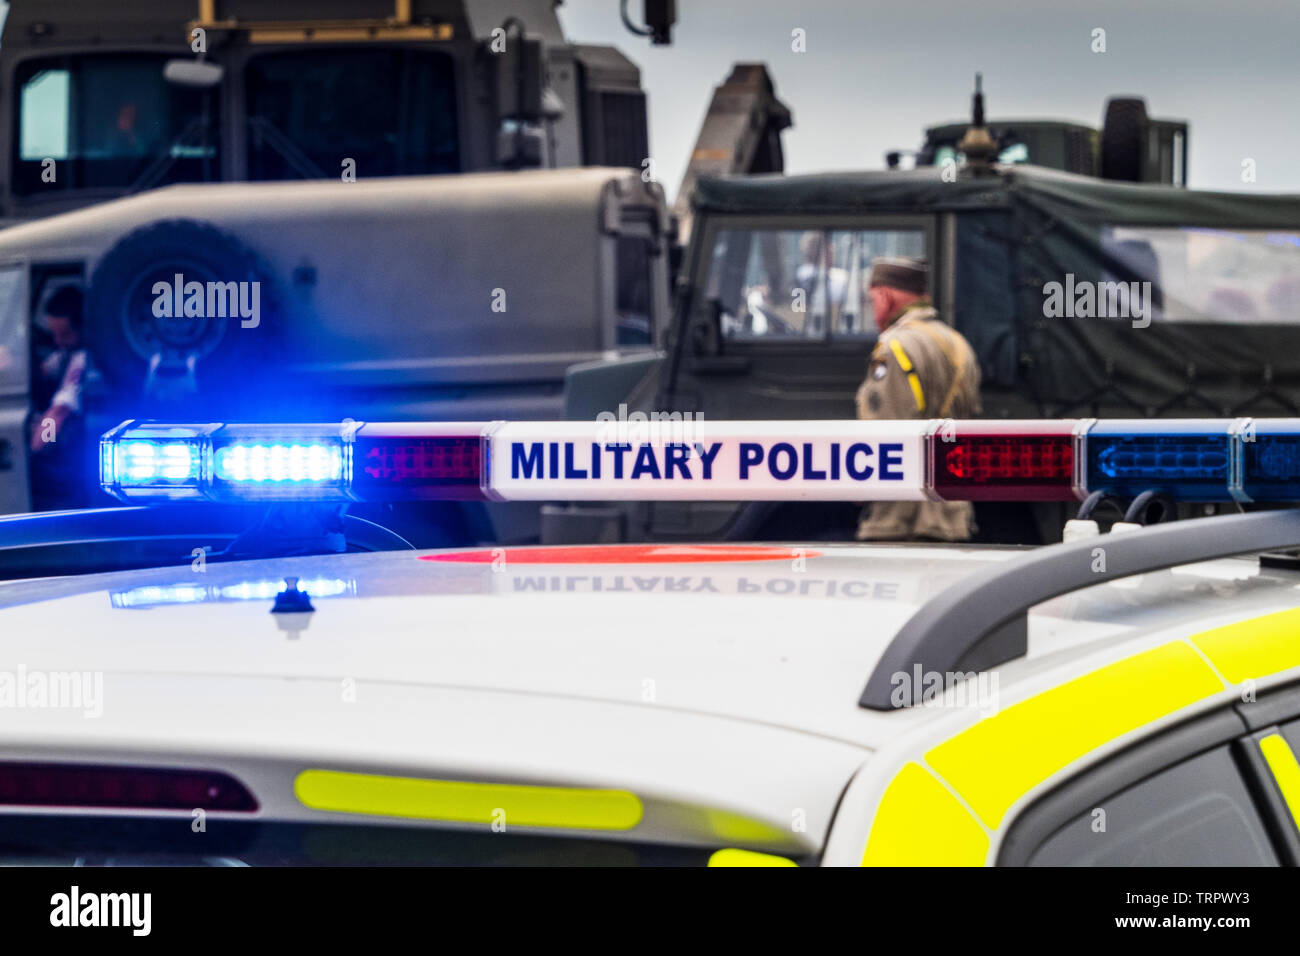 British Military Police Car with blue lights flashing Stock Photo